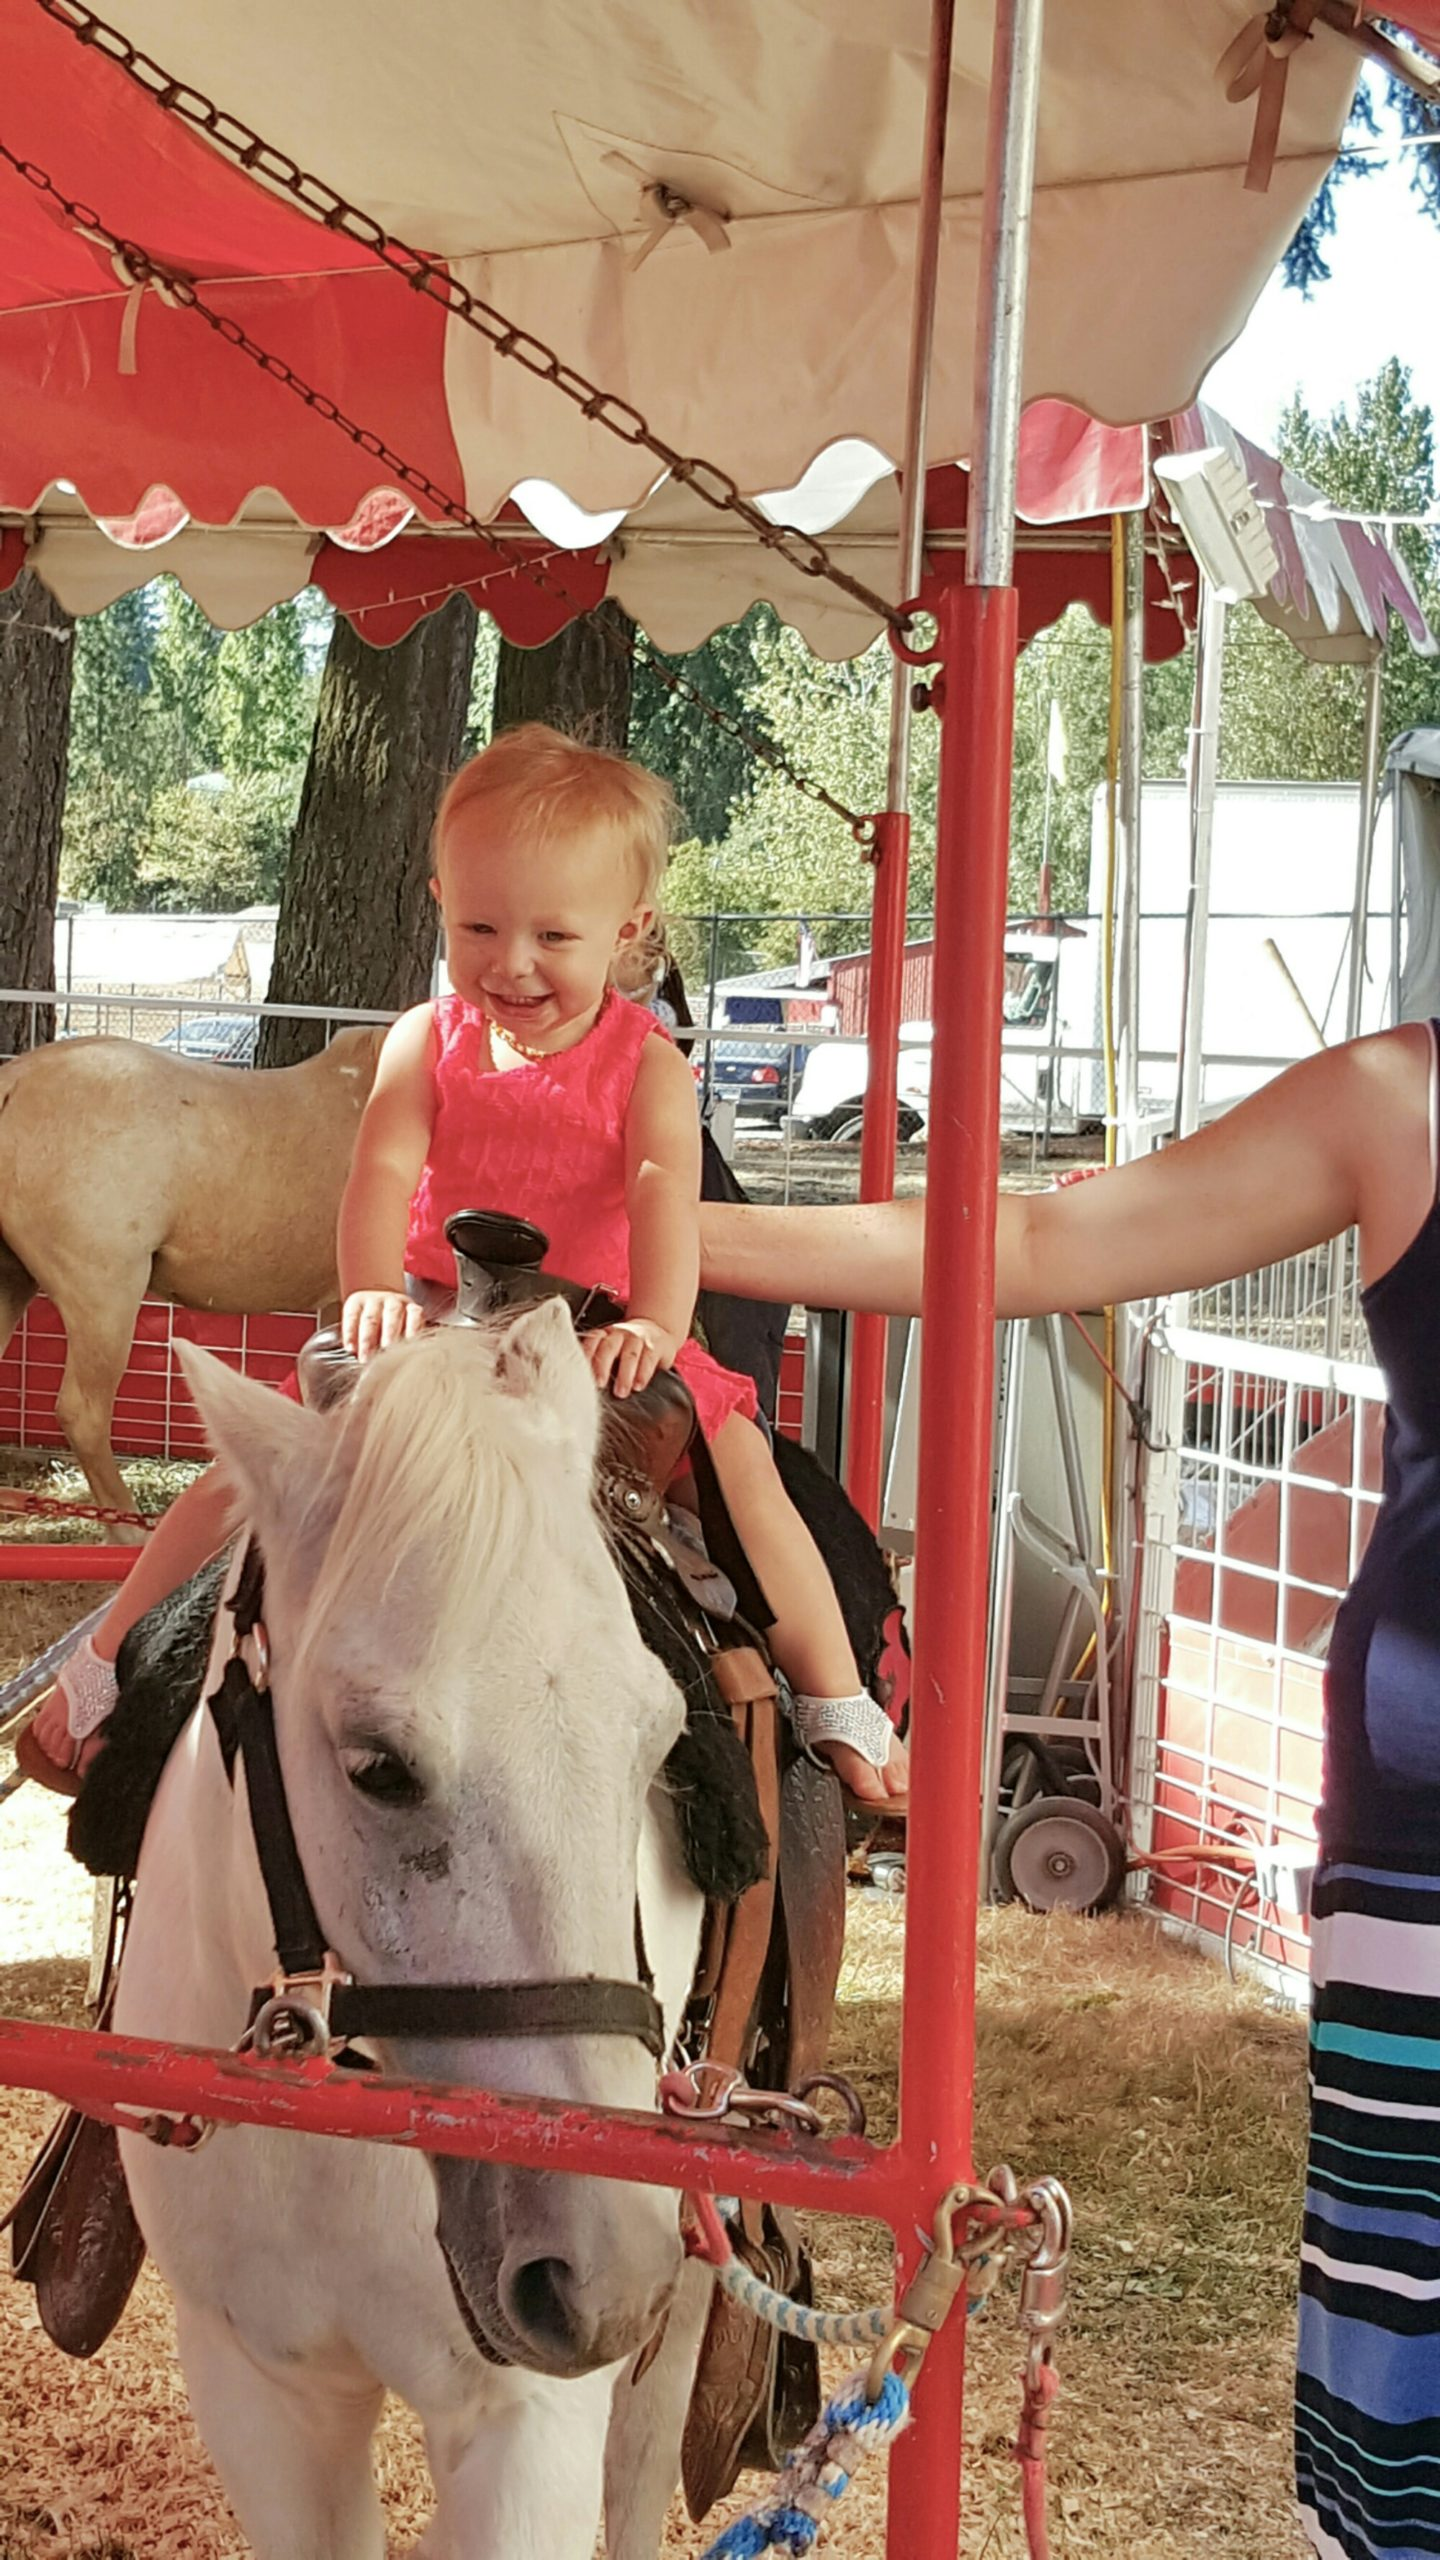 2 Days of Fun at the Clark County Fair in Ridgefield, WA